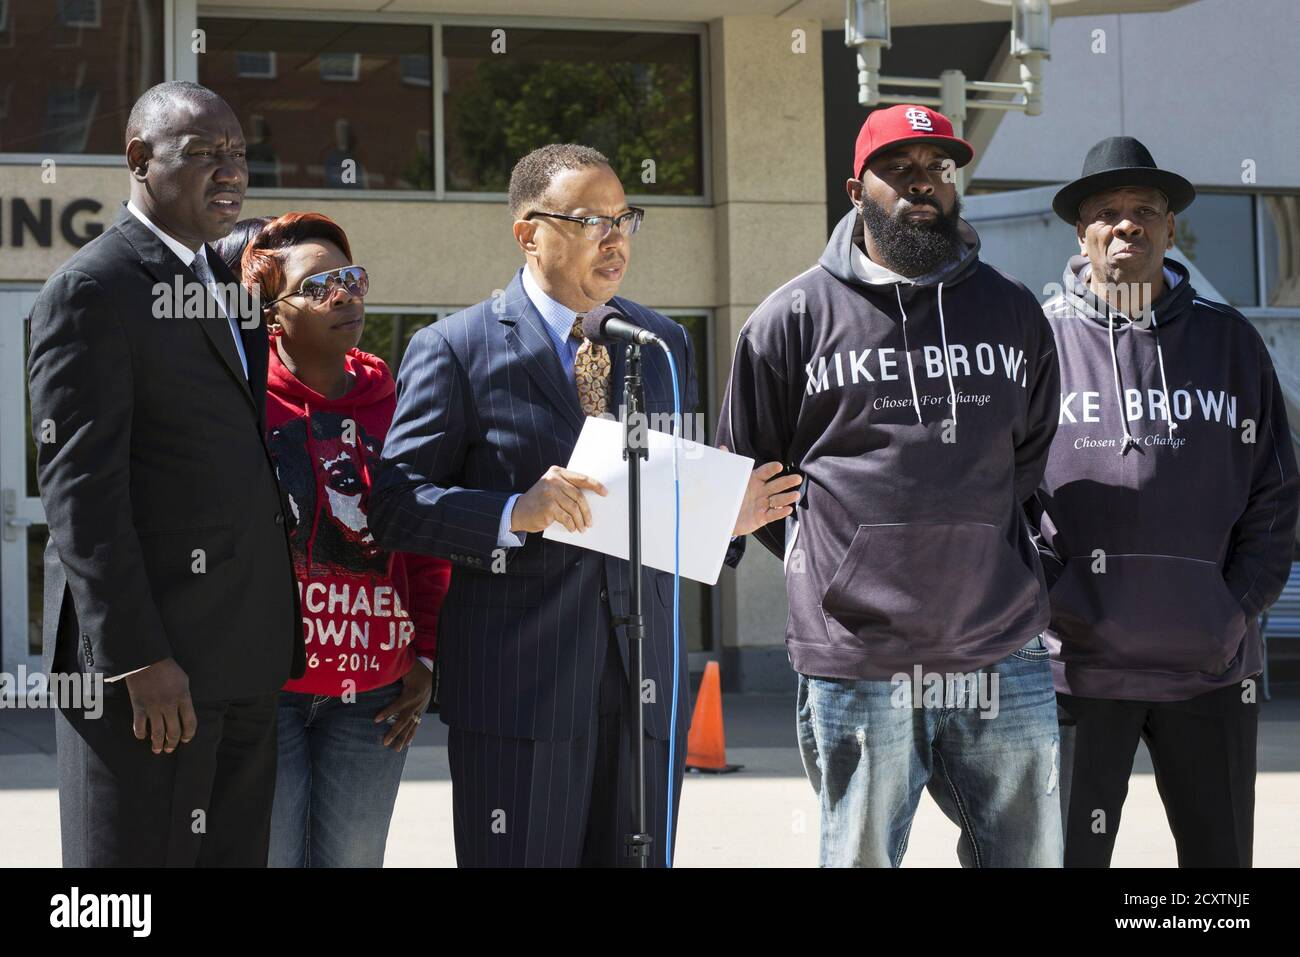 Michael Brown's family lawyers Anthony Gray (C) and Benjamin Crump (L), stand with his mother Lesley McSpadden (2nd L) and father Michael Brown Sr., as they announce the Brown family has filed a wrongful death lawsuit against the city of Ferguson in front of the St. Louis County Circuit Court in Clayton, Missouri, April 23, 2015. The family of Michael Brown filed a wrongful death lawsuit against the city of Ferguson on Thursday, seeking unspecified damages and police reforms after the black teen's killing by a white policeman prompted a national debate on law enforcement and race. REUTERS/Kate Stock Photo